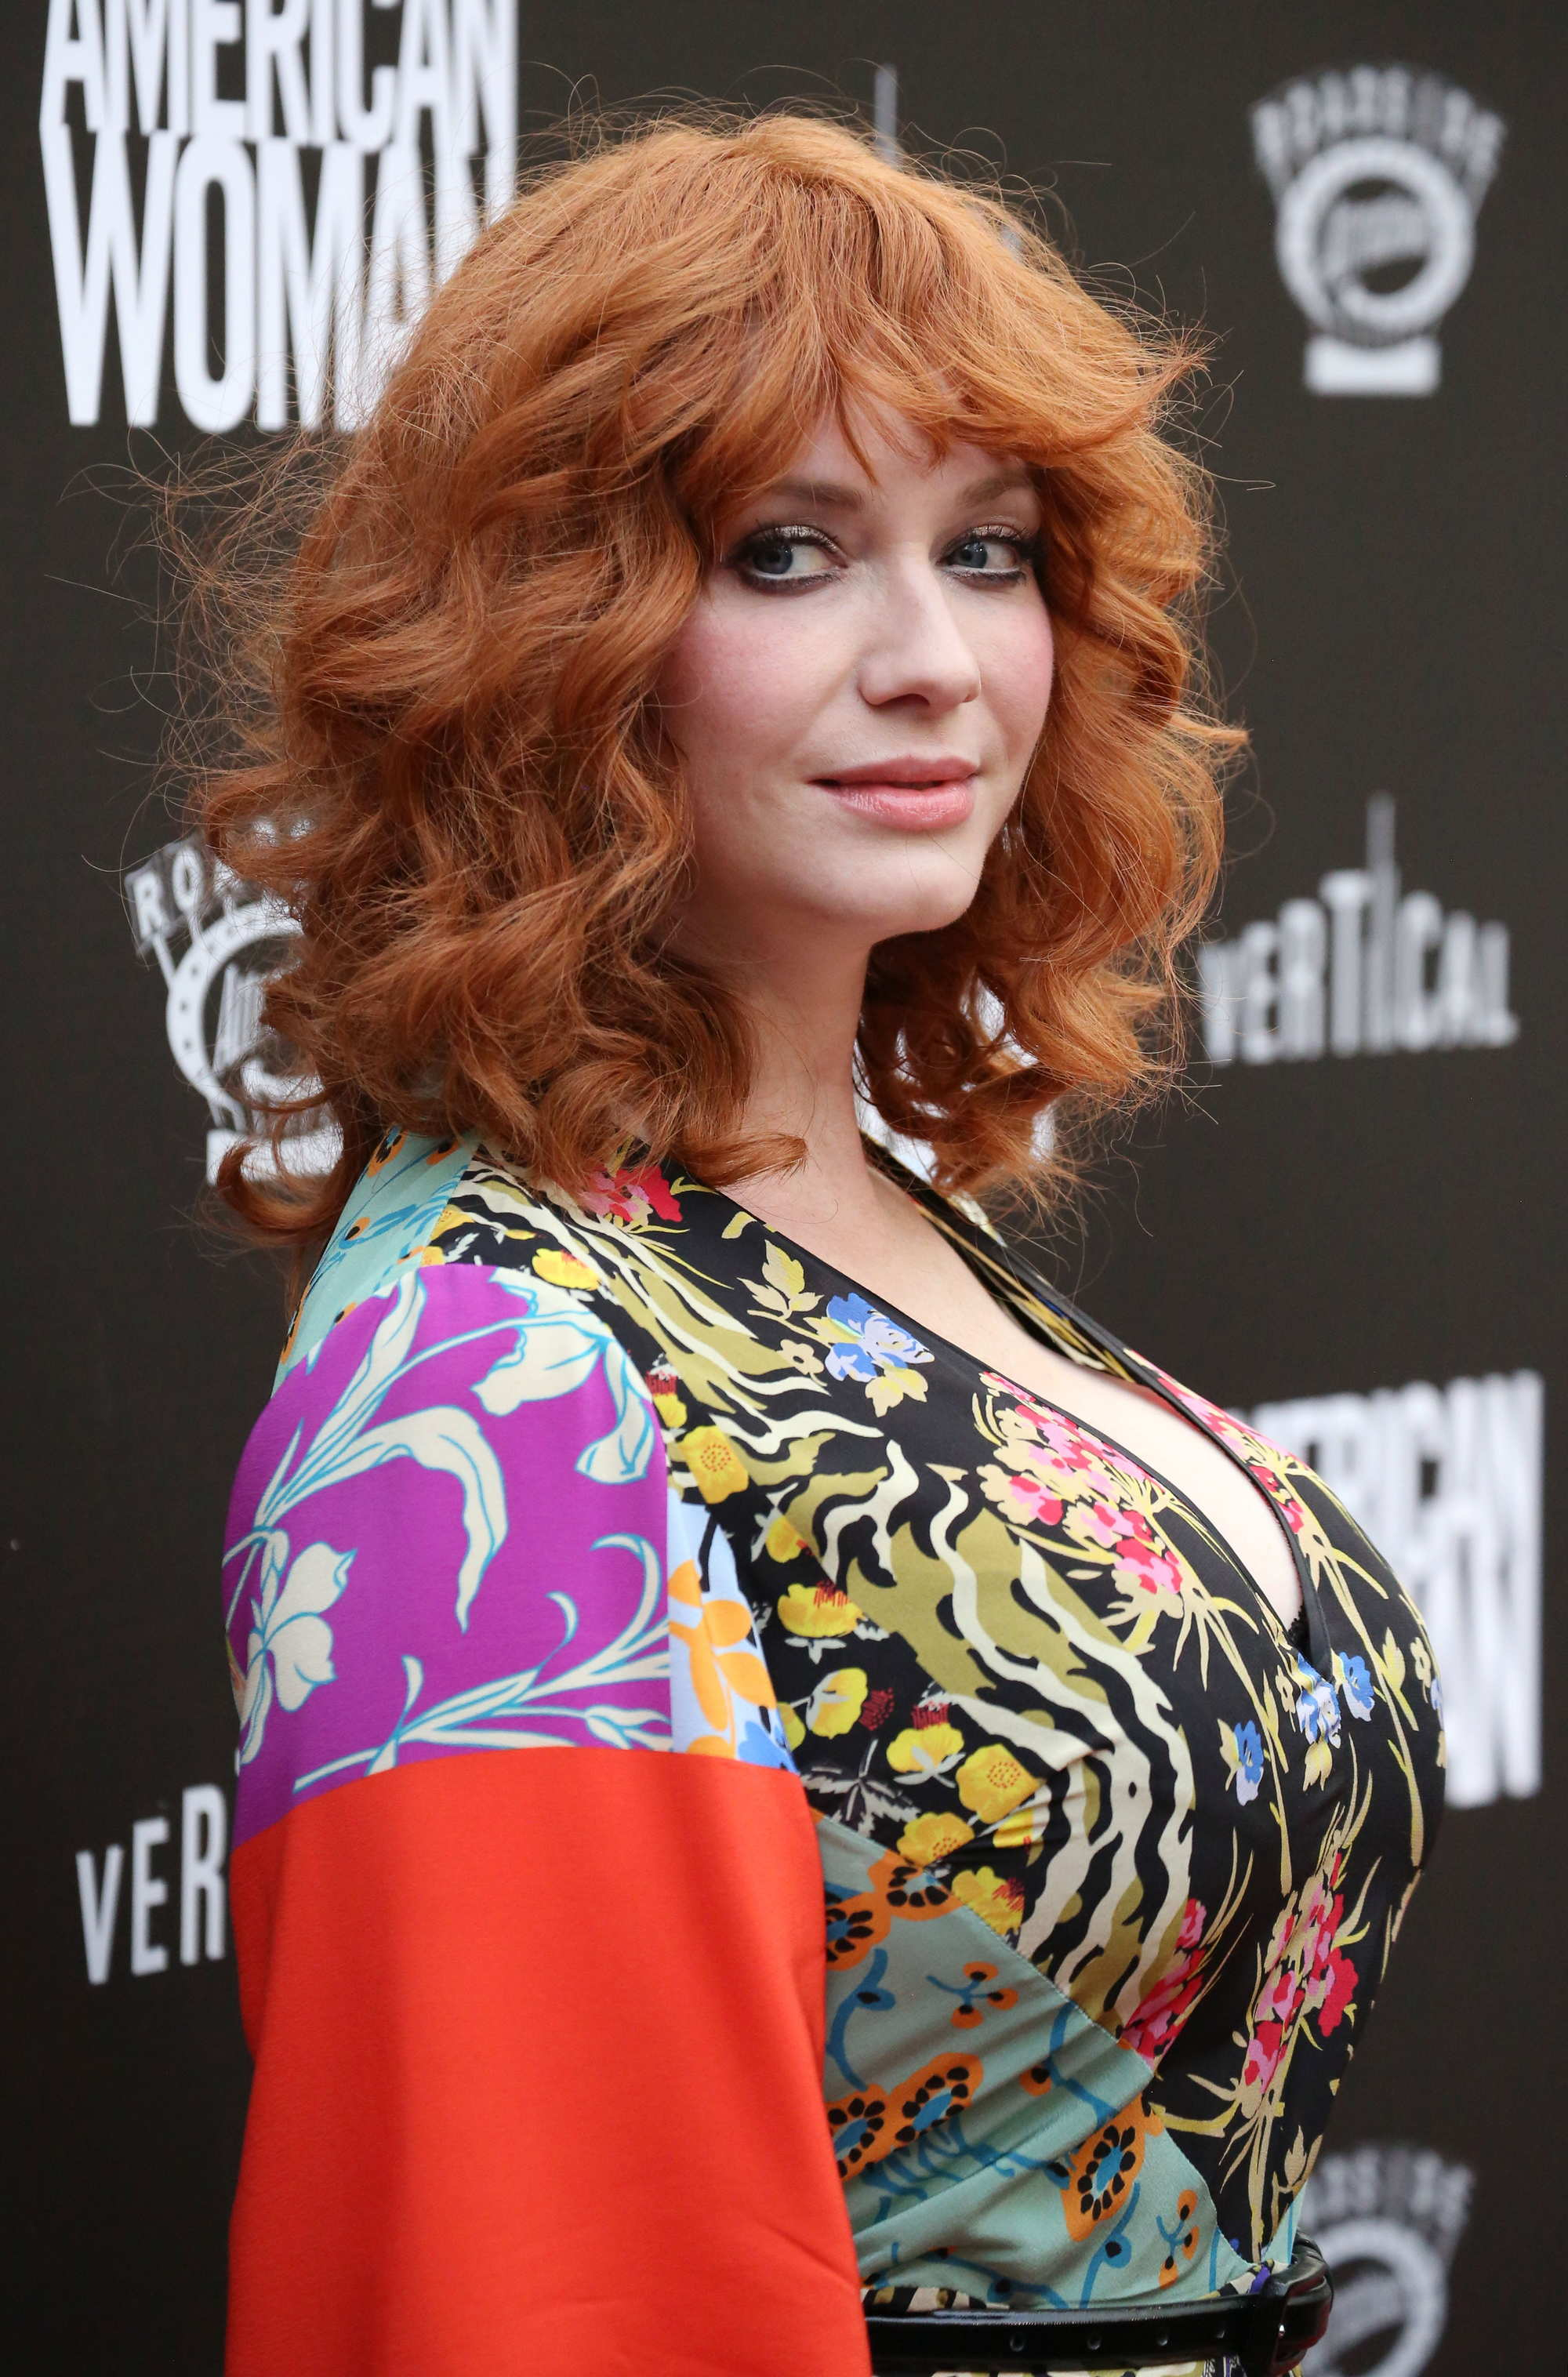 Christina Hendricks with curly red hair and bangs